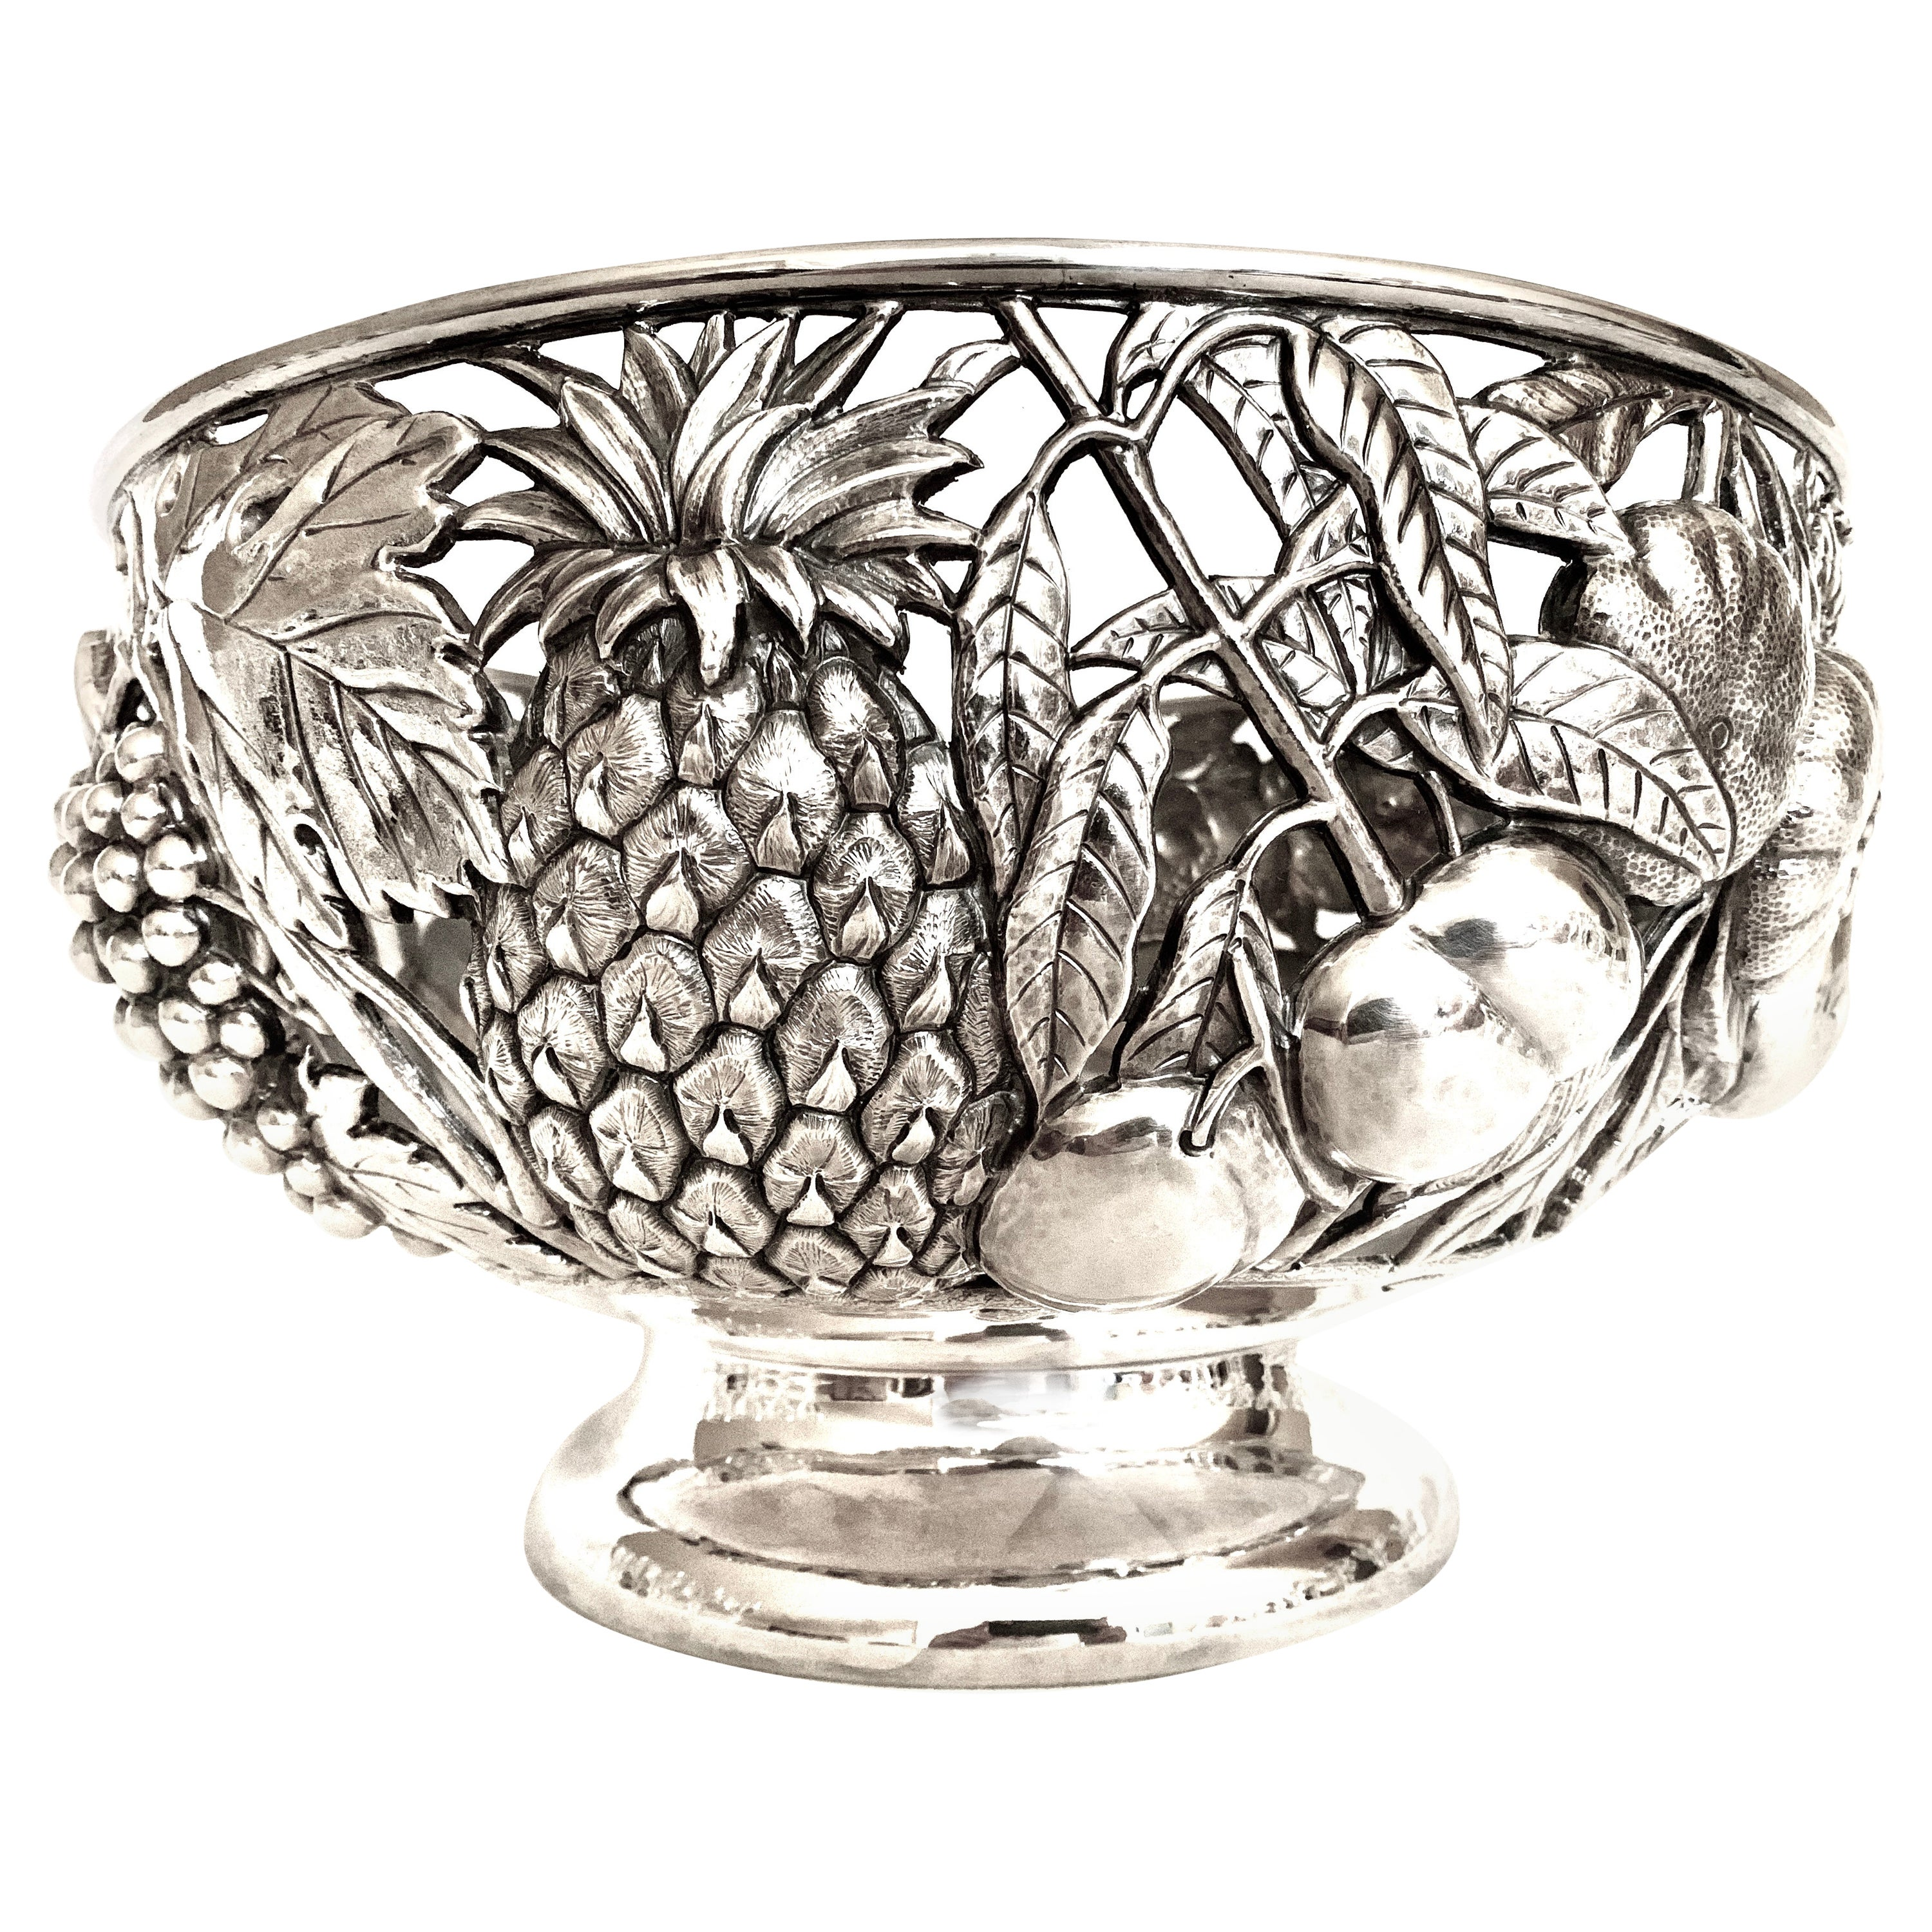 Fratelli Cacchione Immense Sterling Silver Centerpiece Bowl, Milan, Italy, 1960s